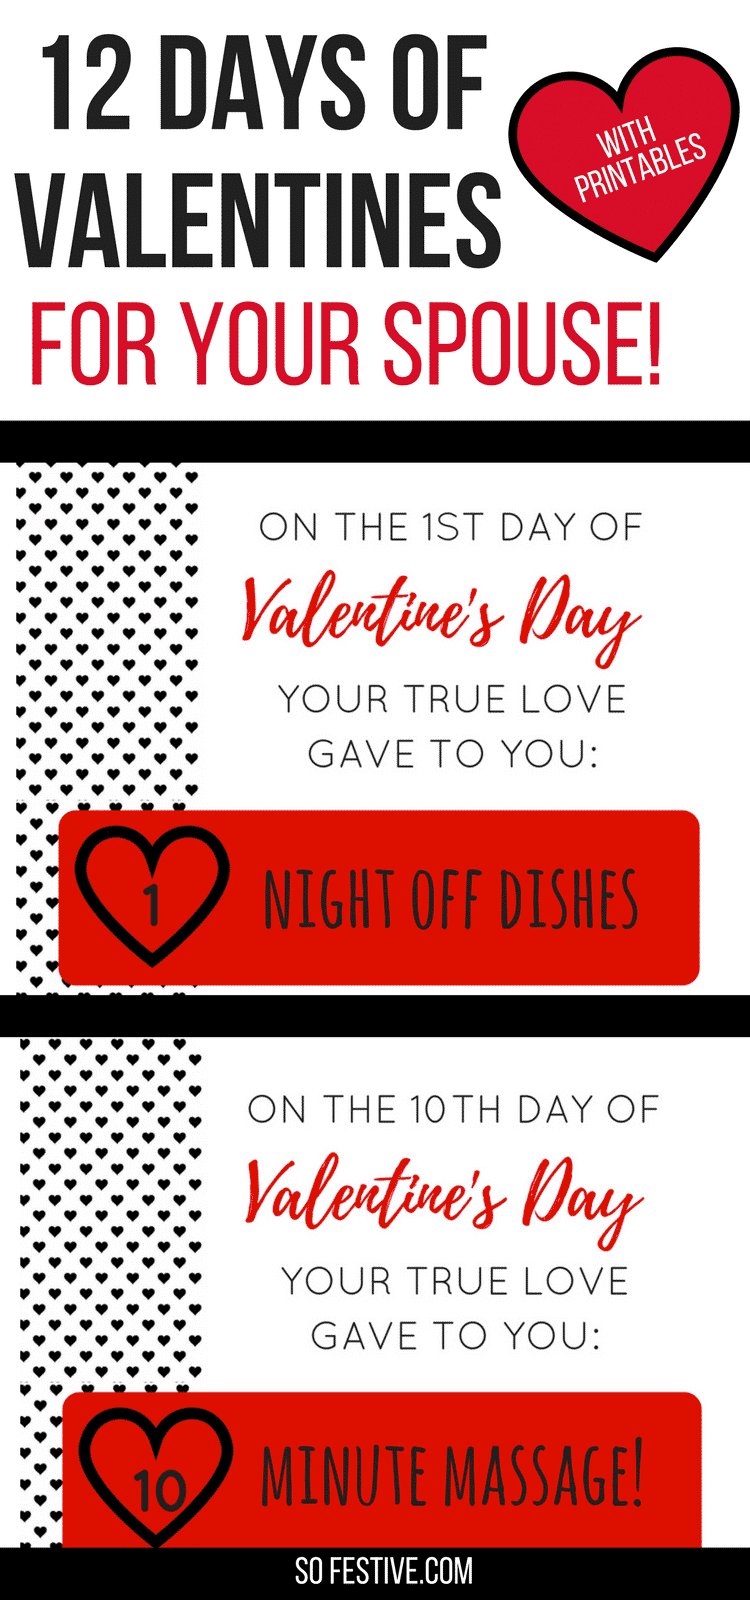 12 Days of Valentines for Your Spouse